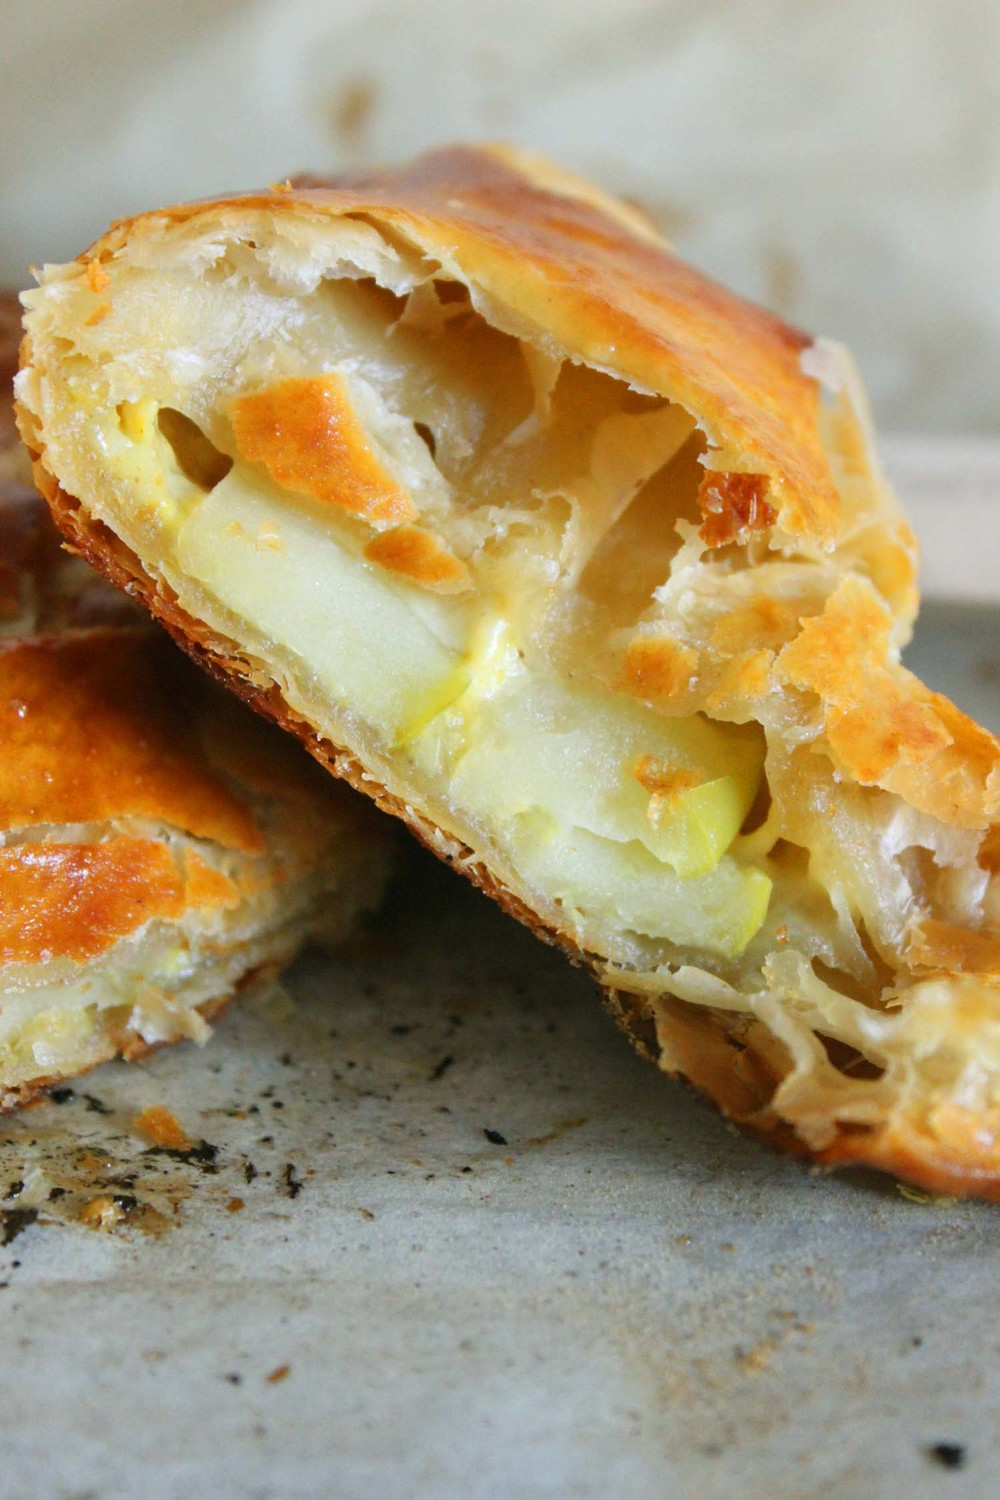 Granny Smith & Cheddar Hand Pies with Spicy Mustard | Image: Laura Messersmith